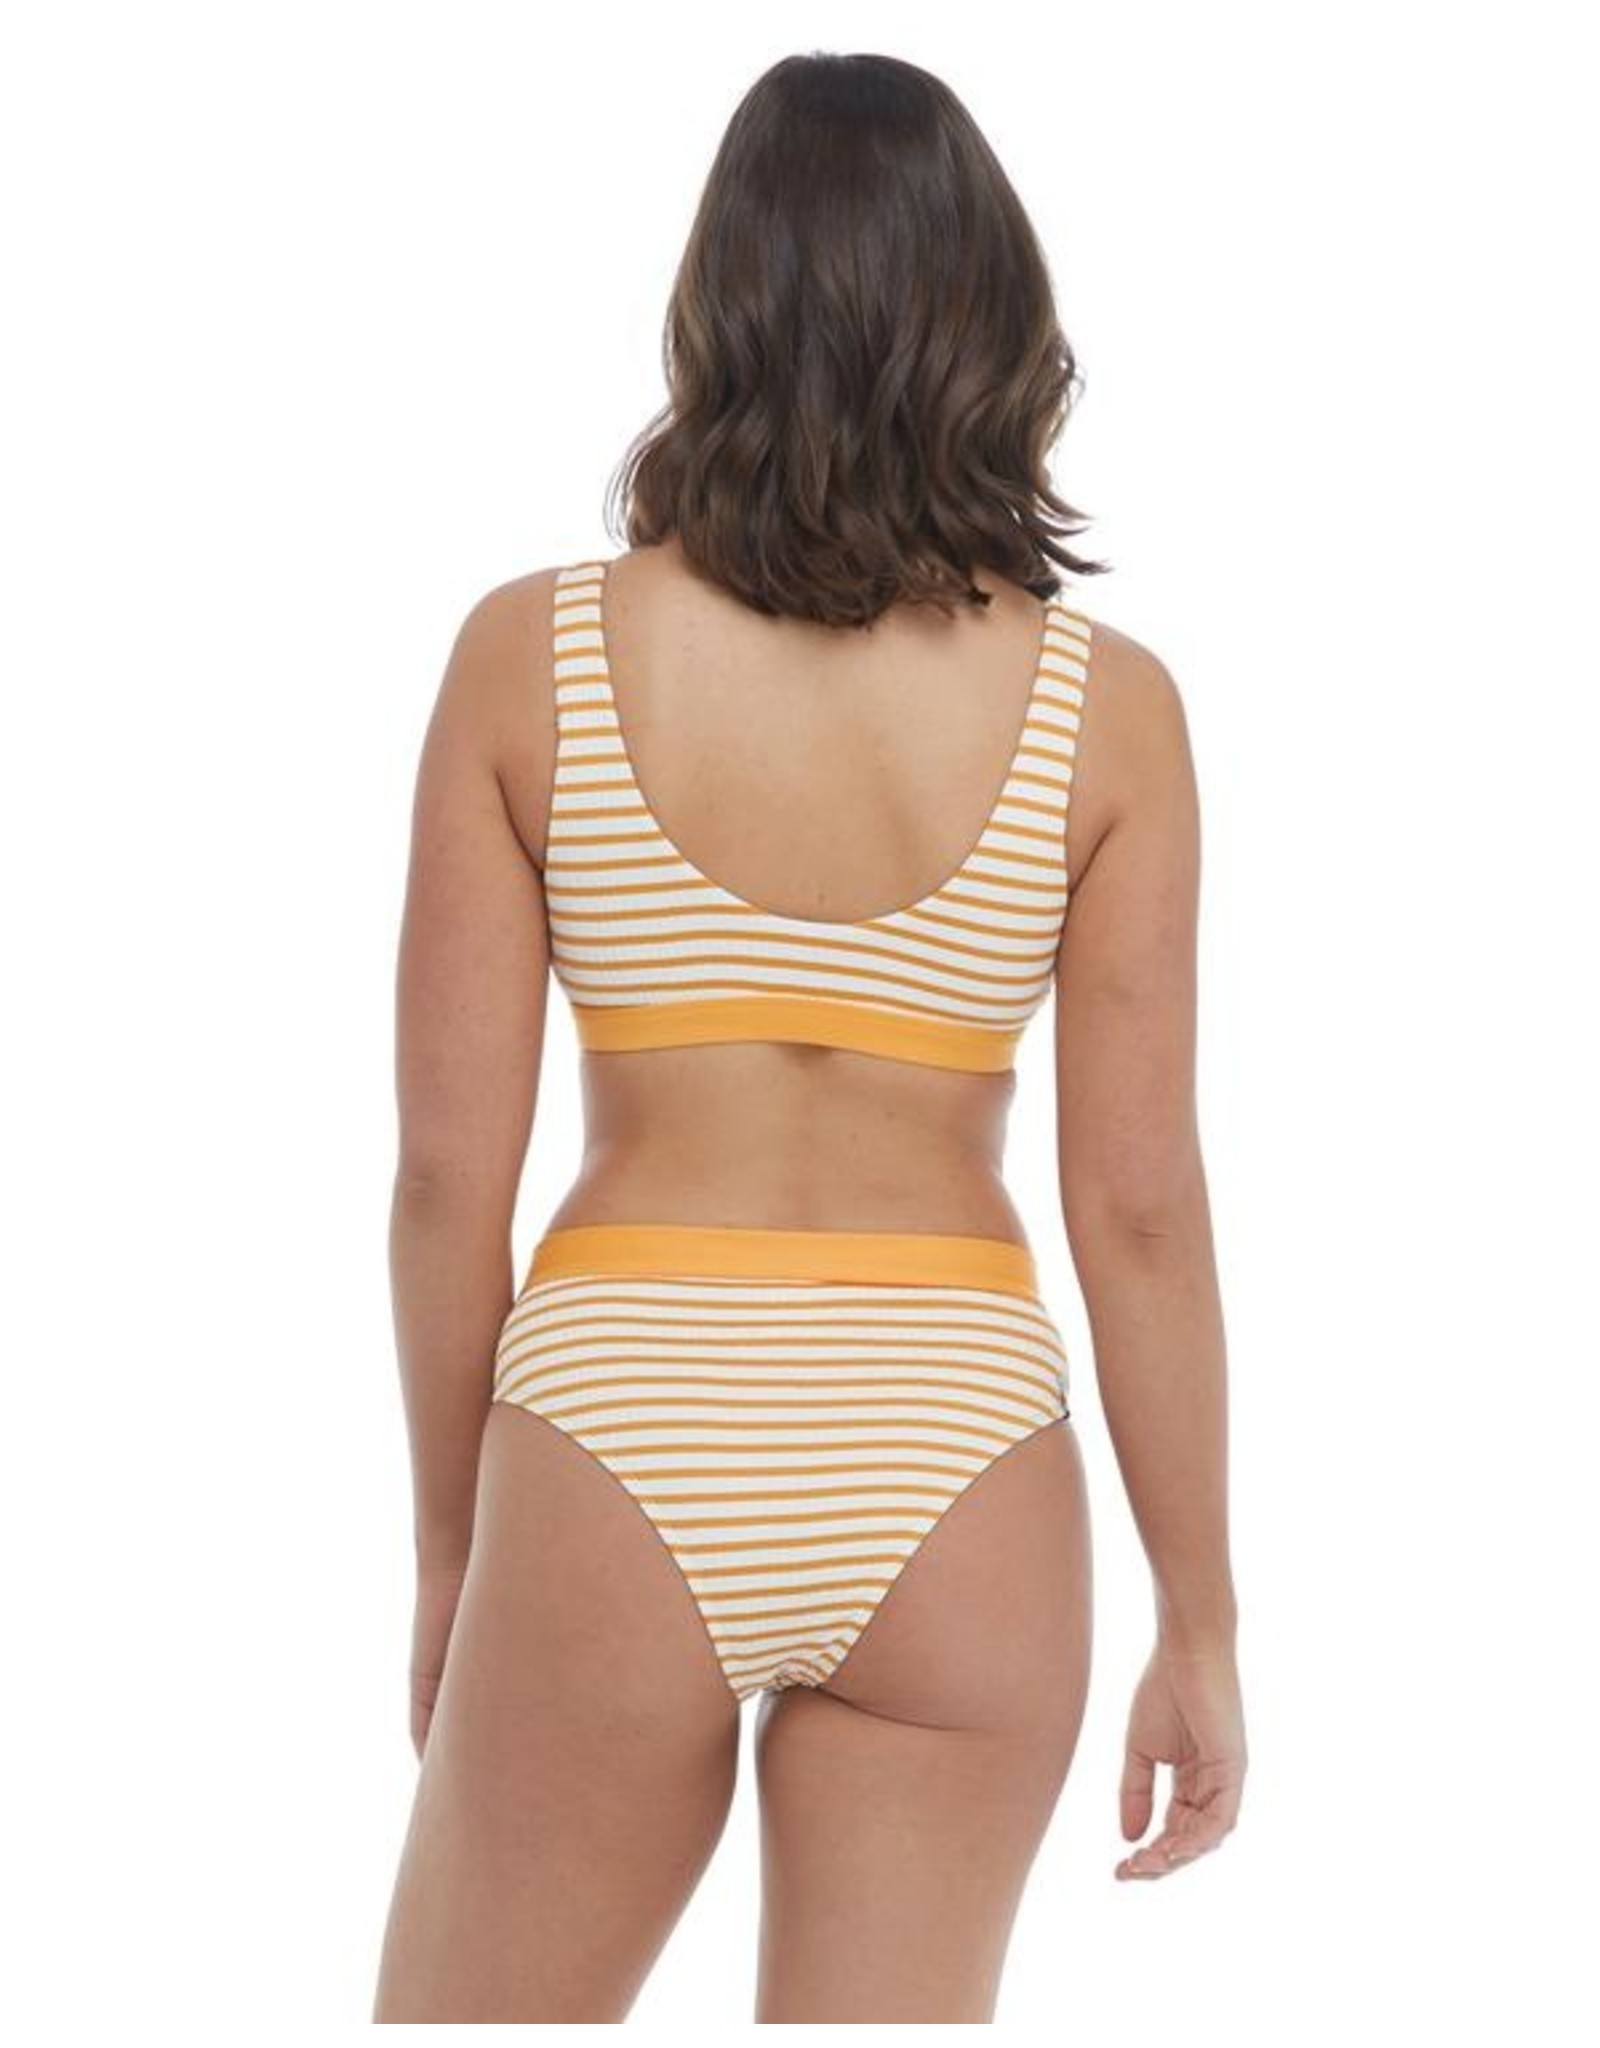 Body Glove Smoothies Alison D/DD Cup Swim Top